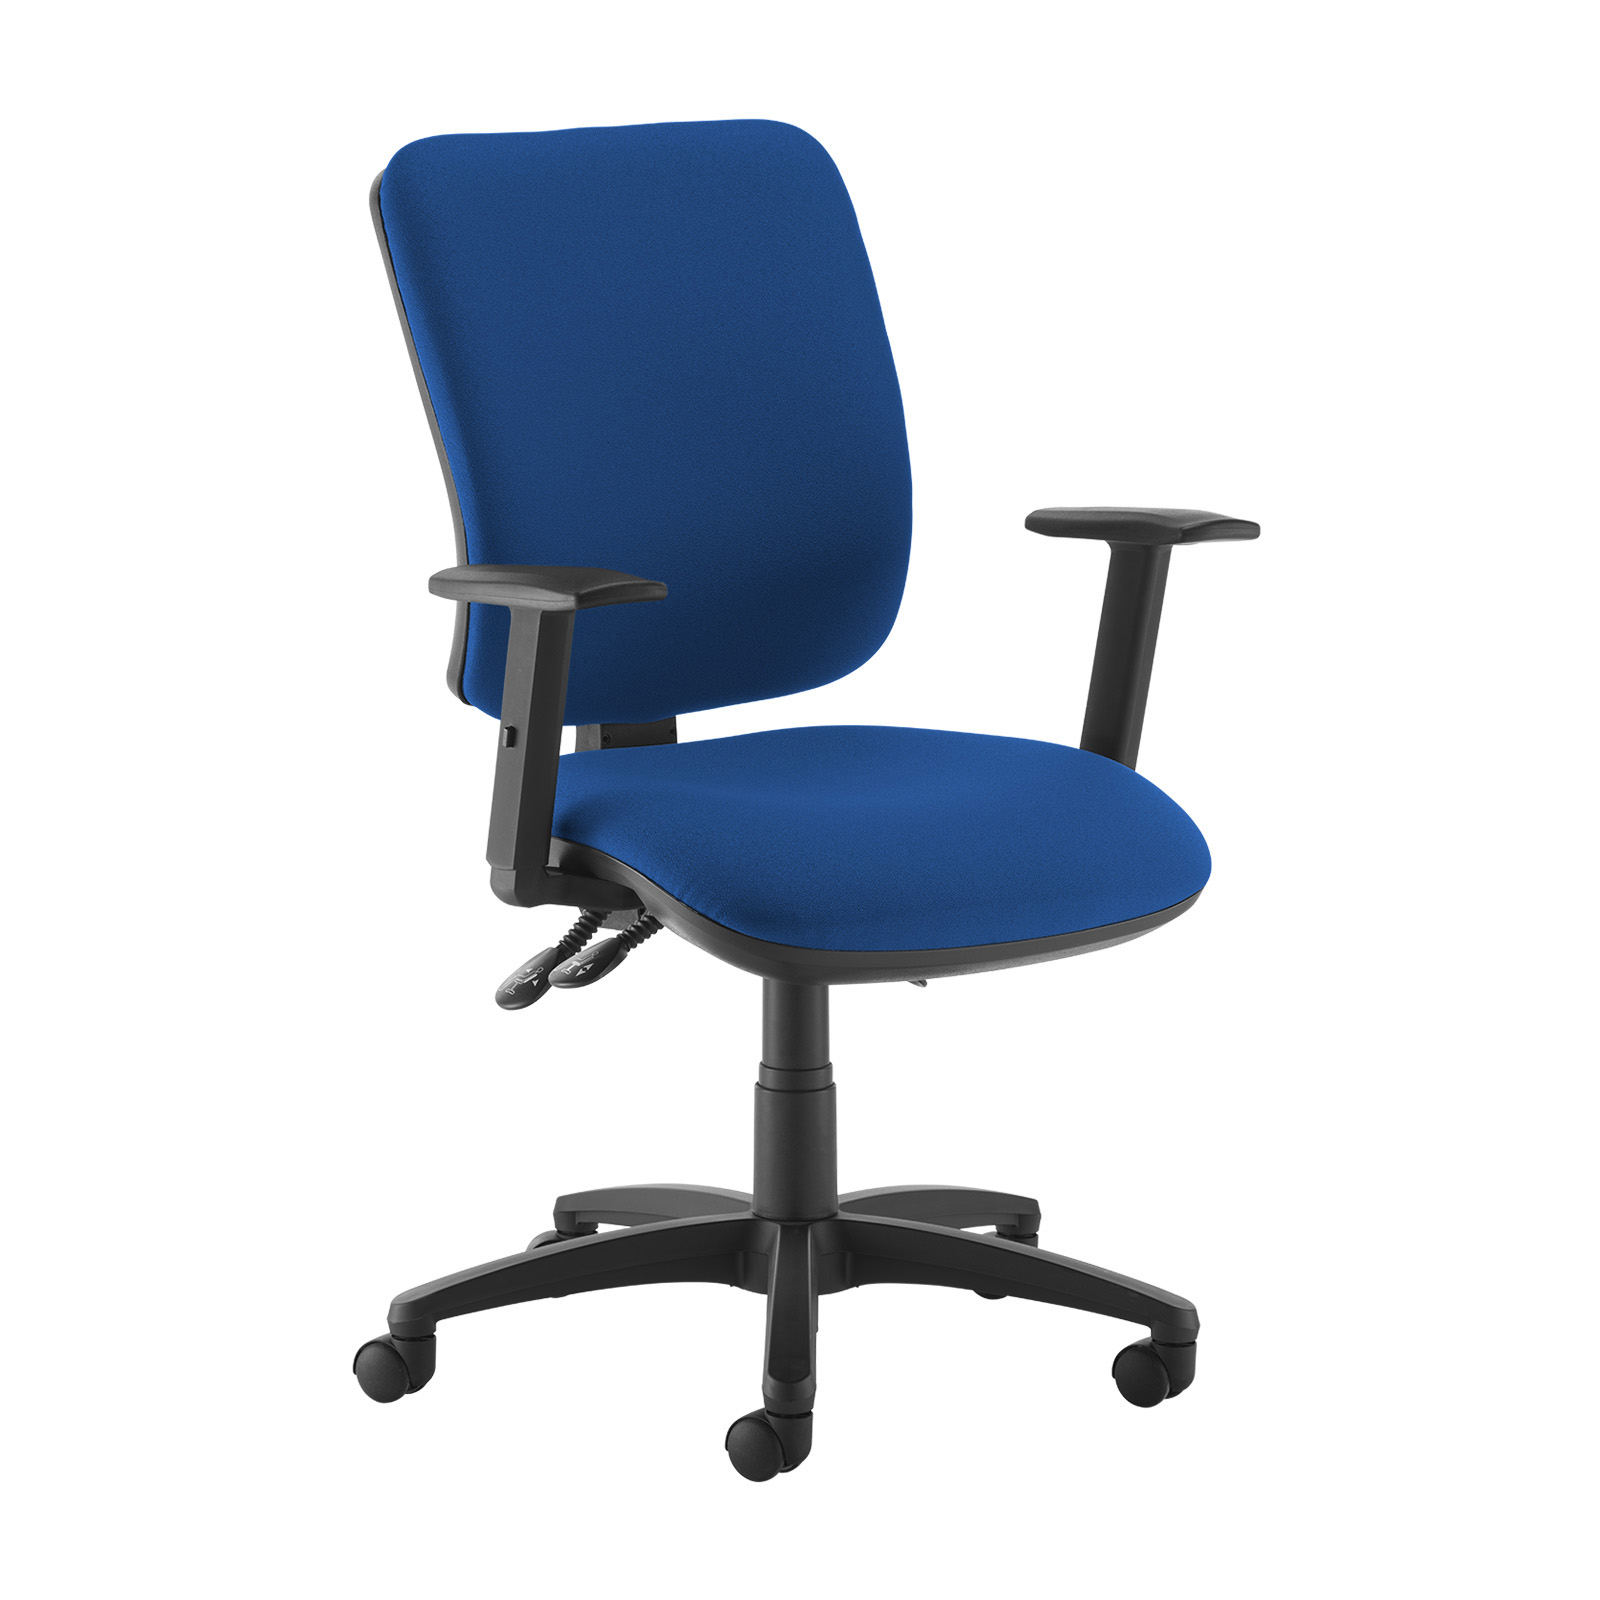 Desk Chairs Senza high back operator chair with adjustable arms - blue